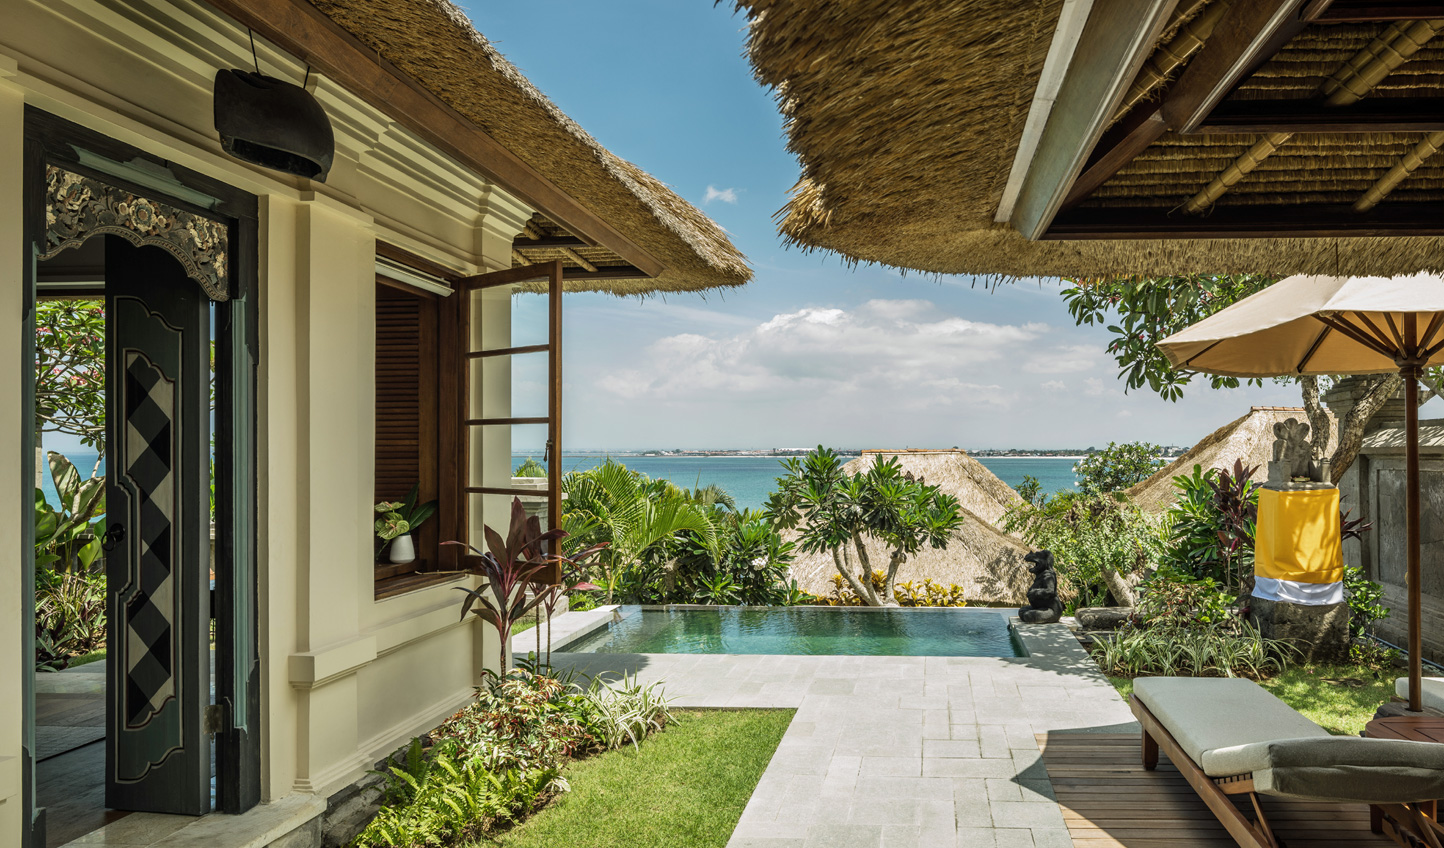 Step into your private oasis